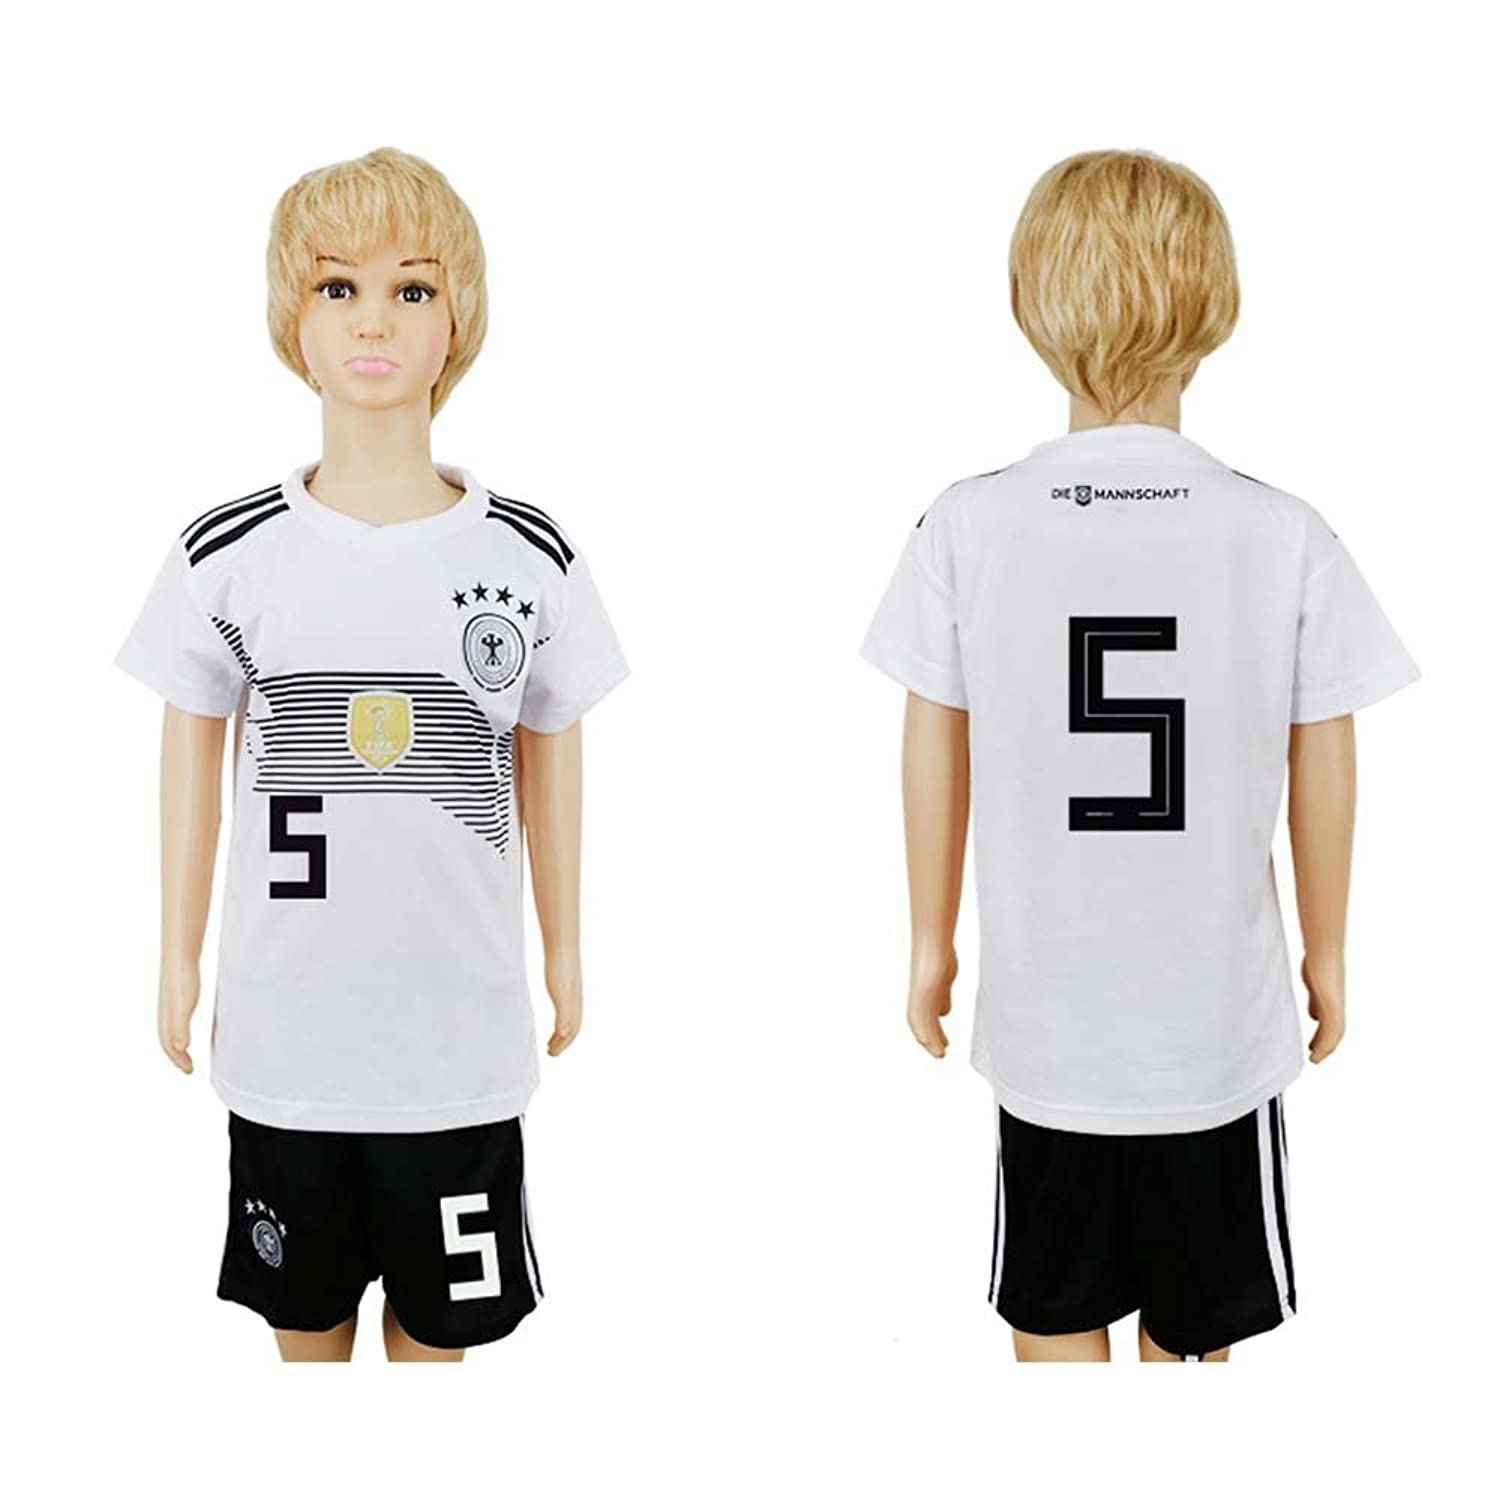 Puizozi SHIRT ボーイズ B07D3LN18H 16# (3 to 4 Years Old)